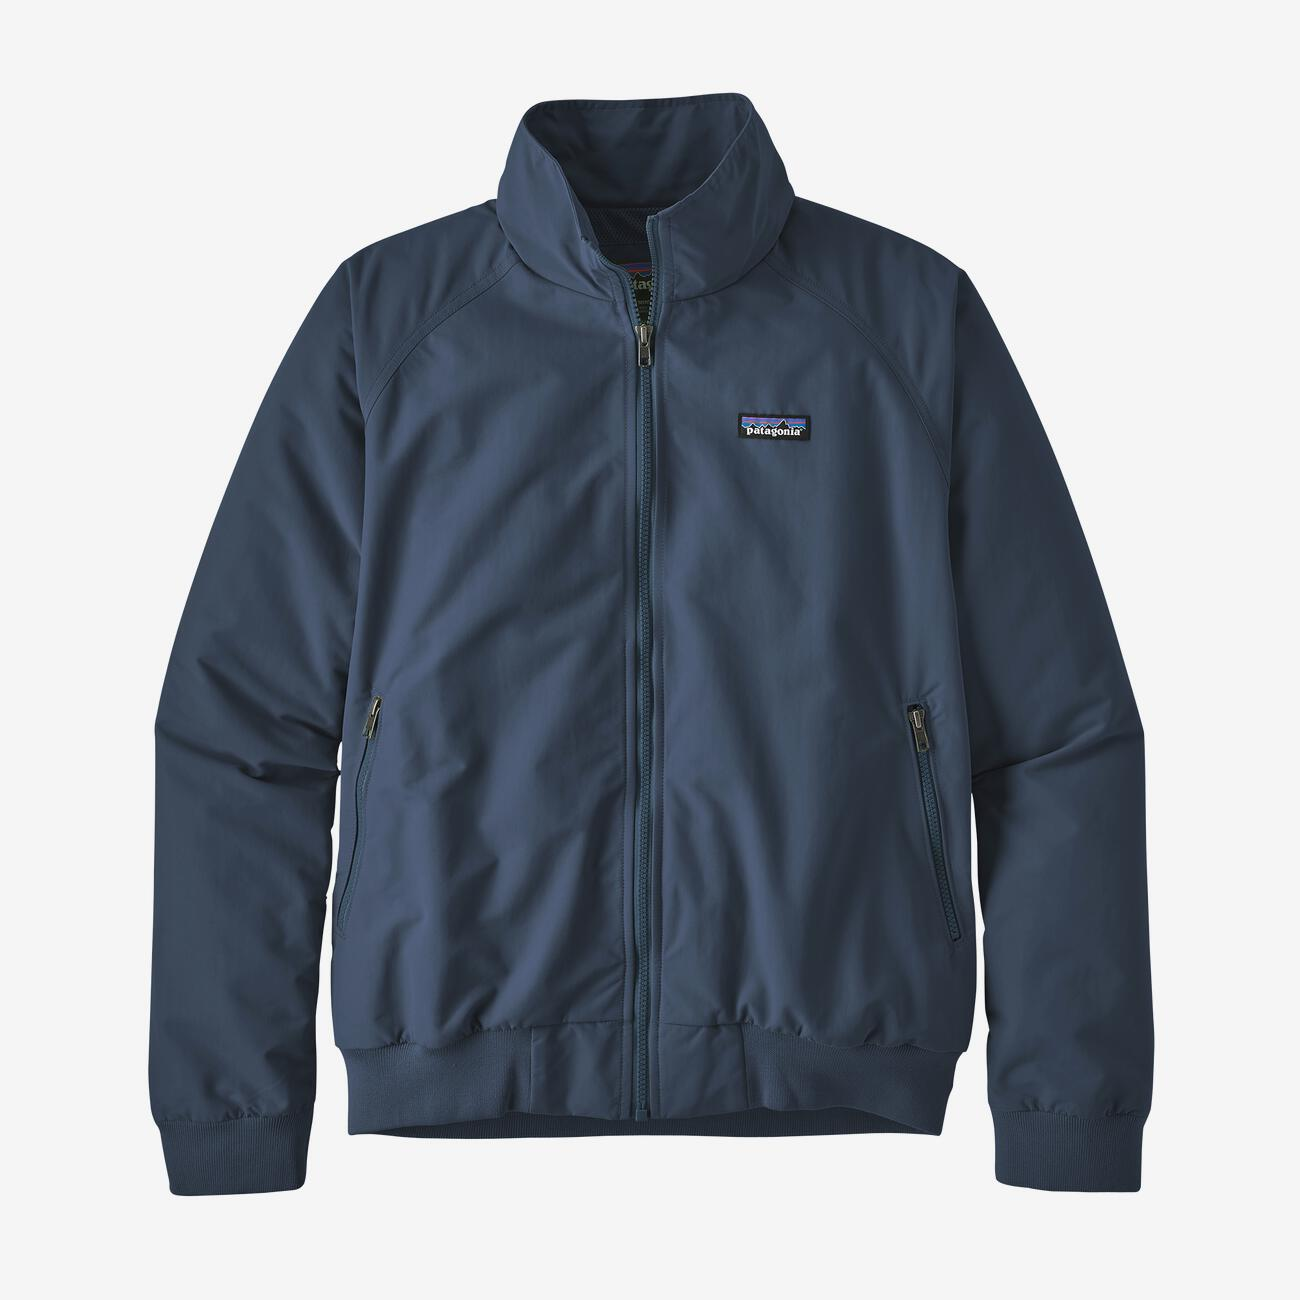 Patagonia – Men's Baggies™ Jacket